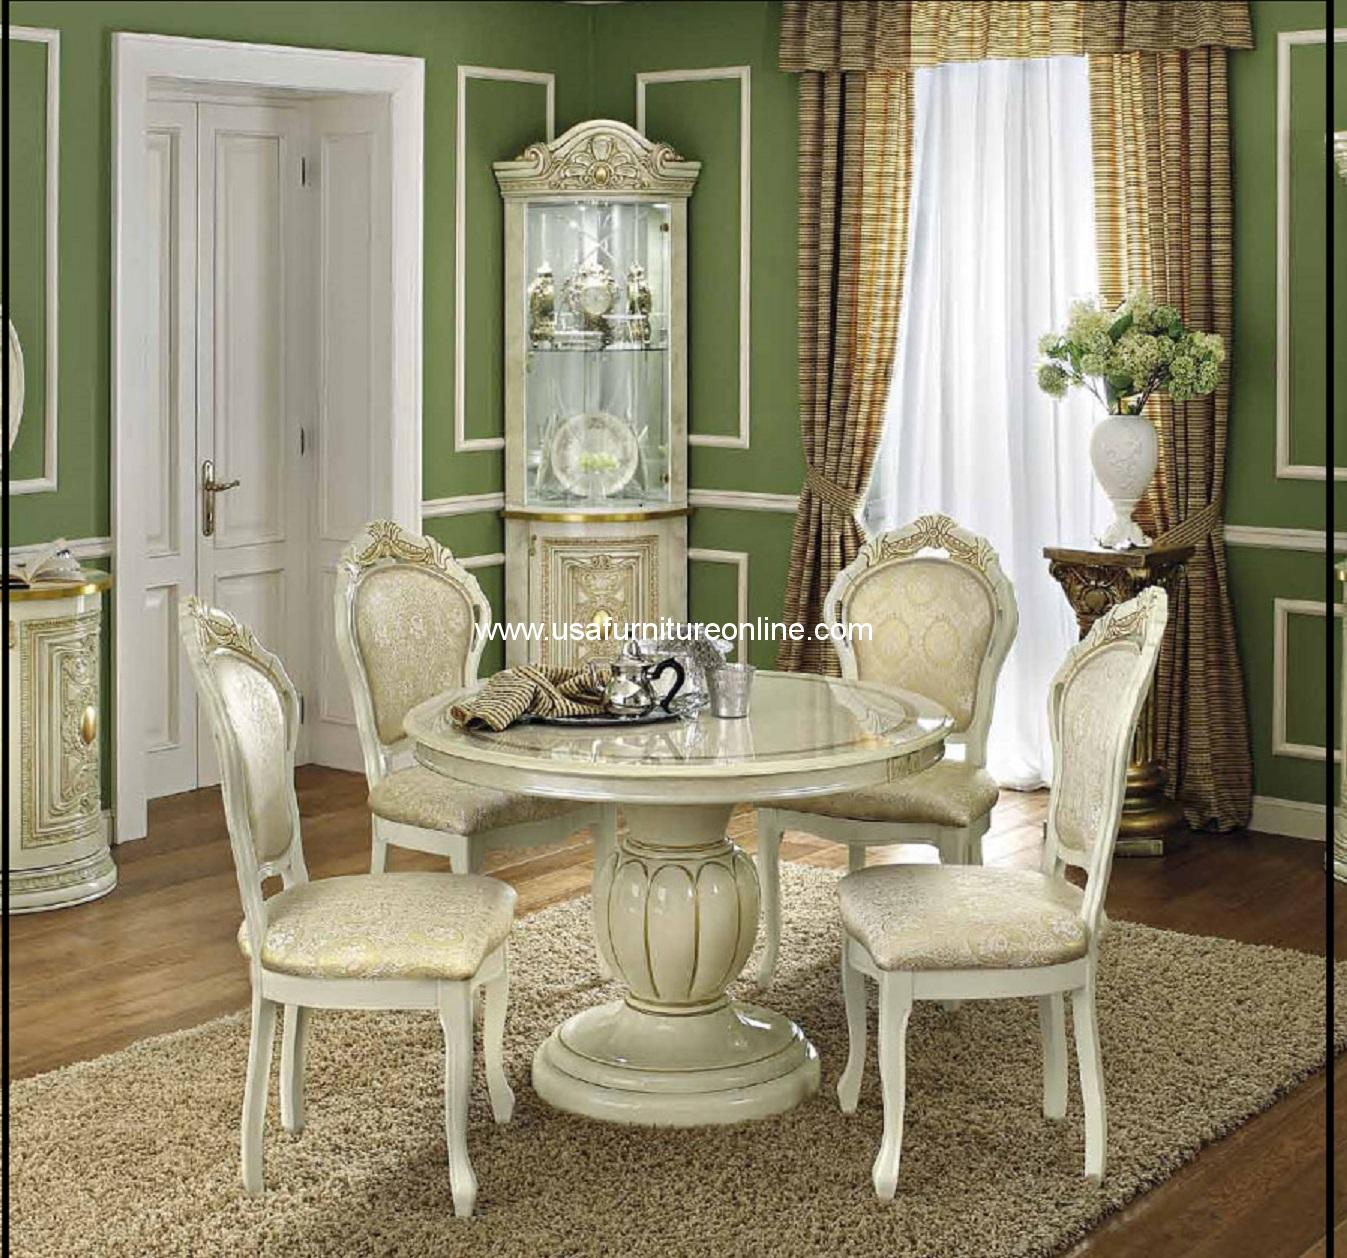 Clearance Dining Room Chairs: Round ESF Leonardo Dining Set • USA Furniture Online